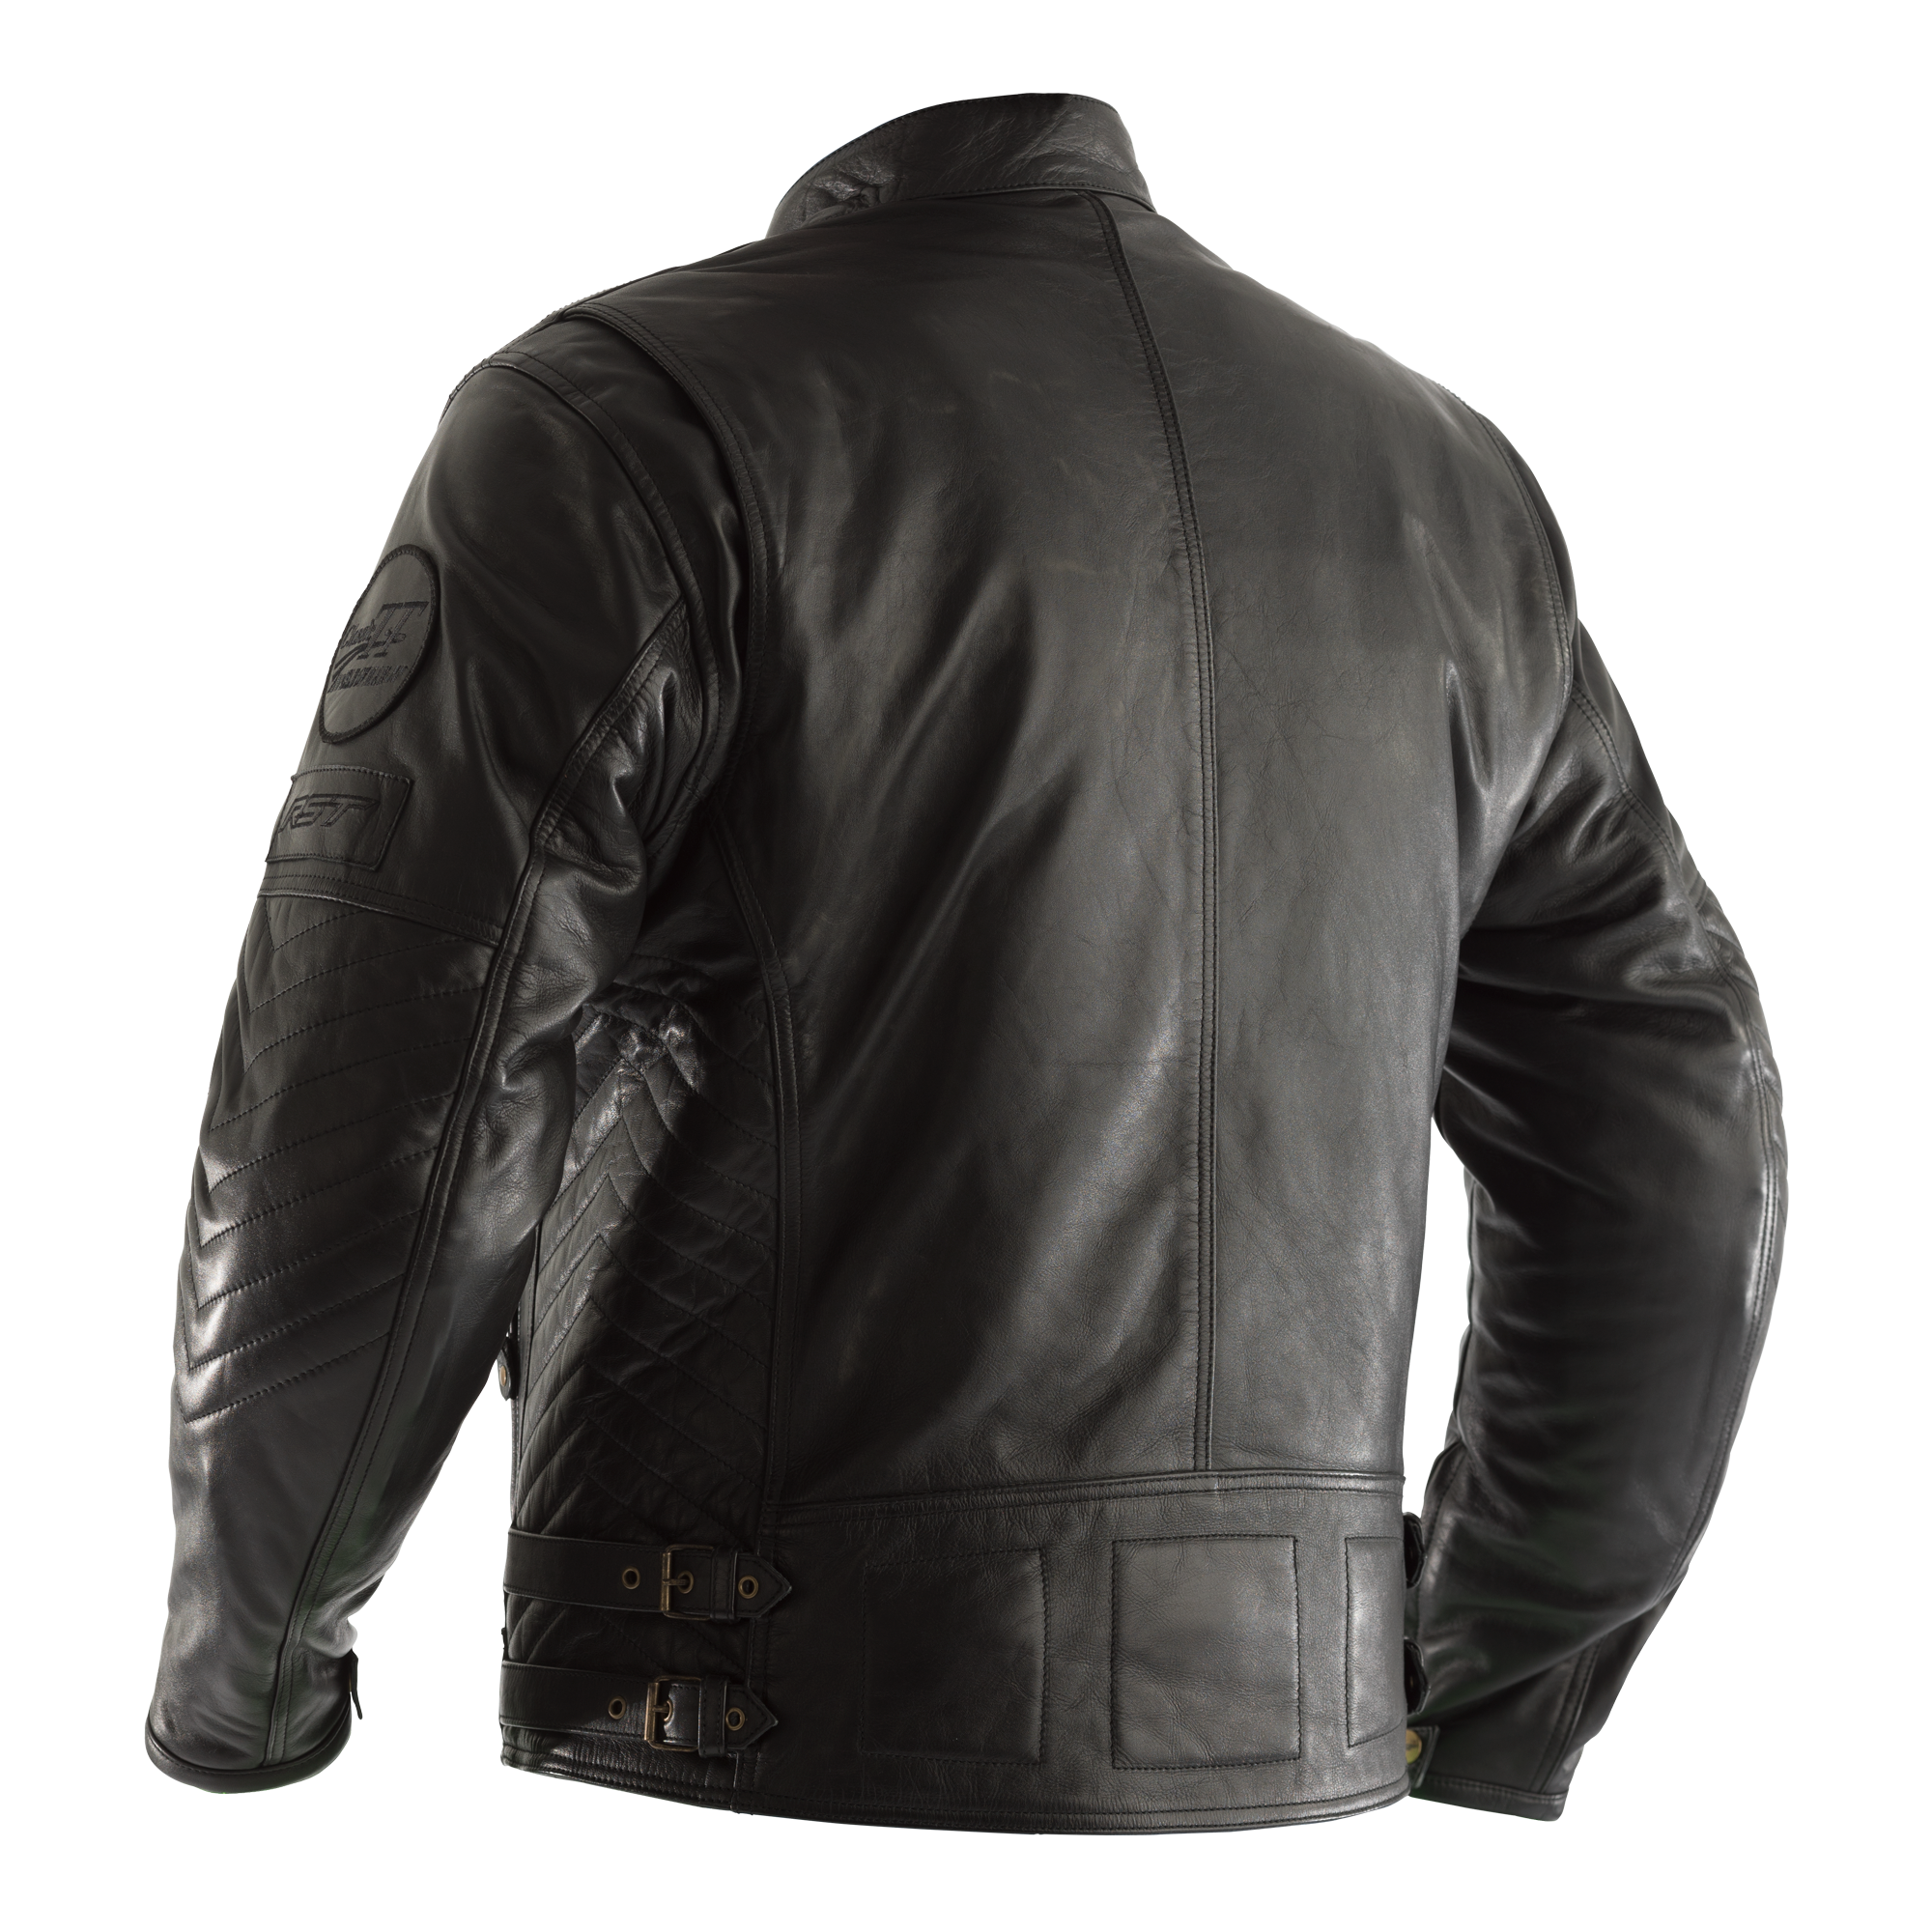 Auto Parts and Vehicles DUCHINNI Retro waterproof Motorcycle Jacket Auto Parts & Accessories